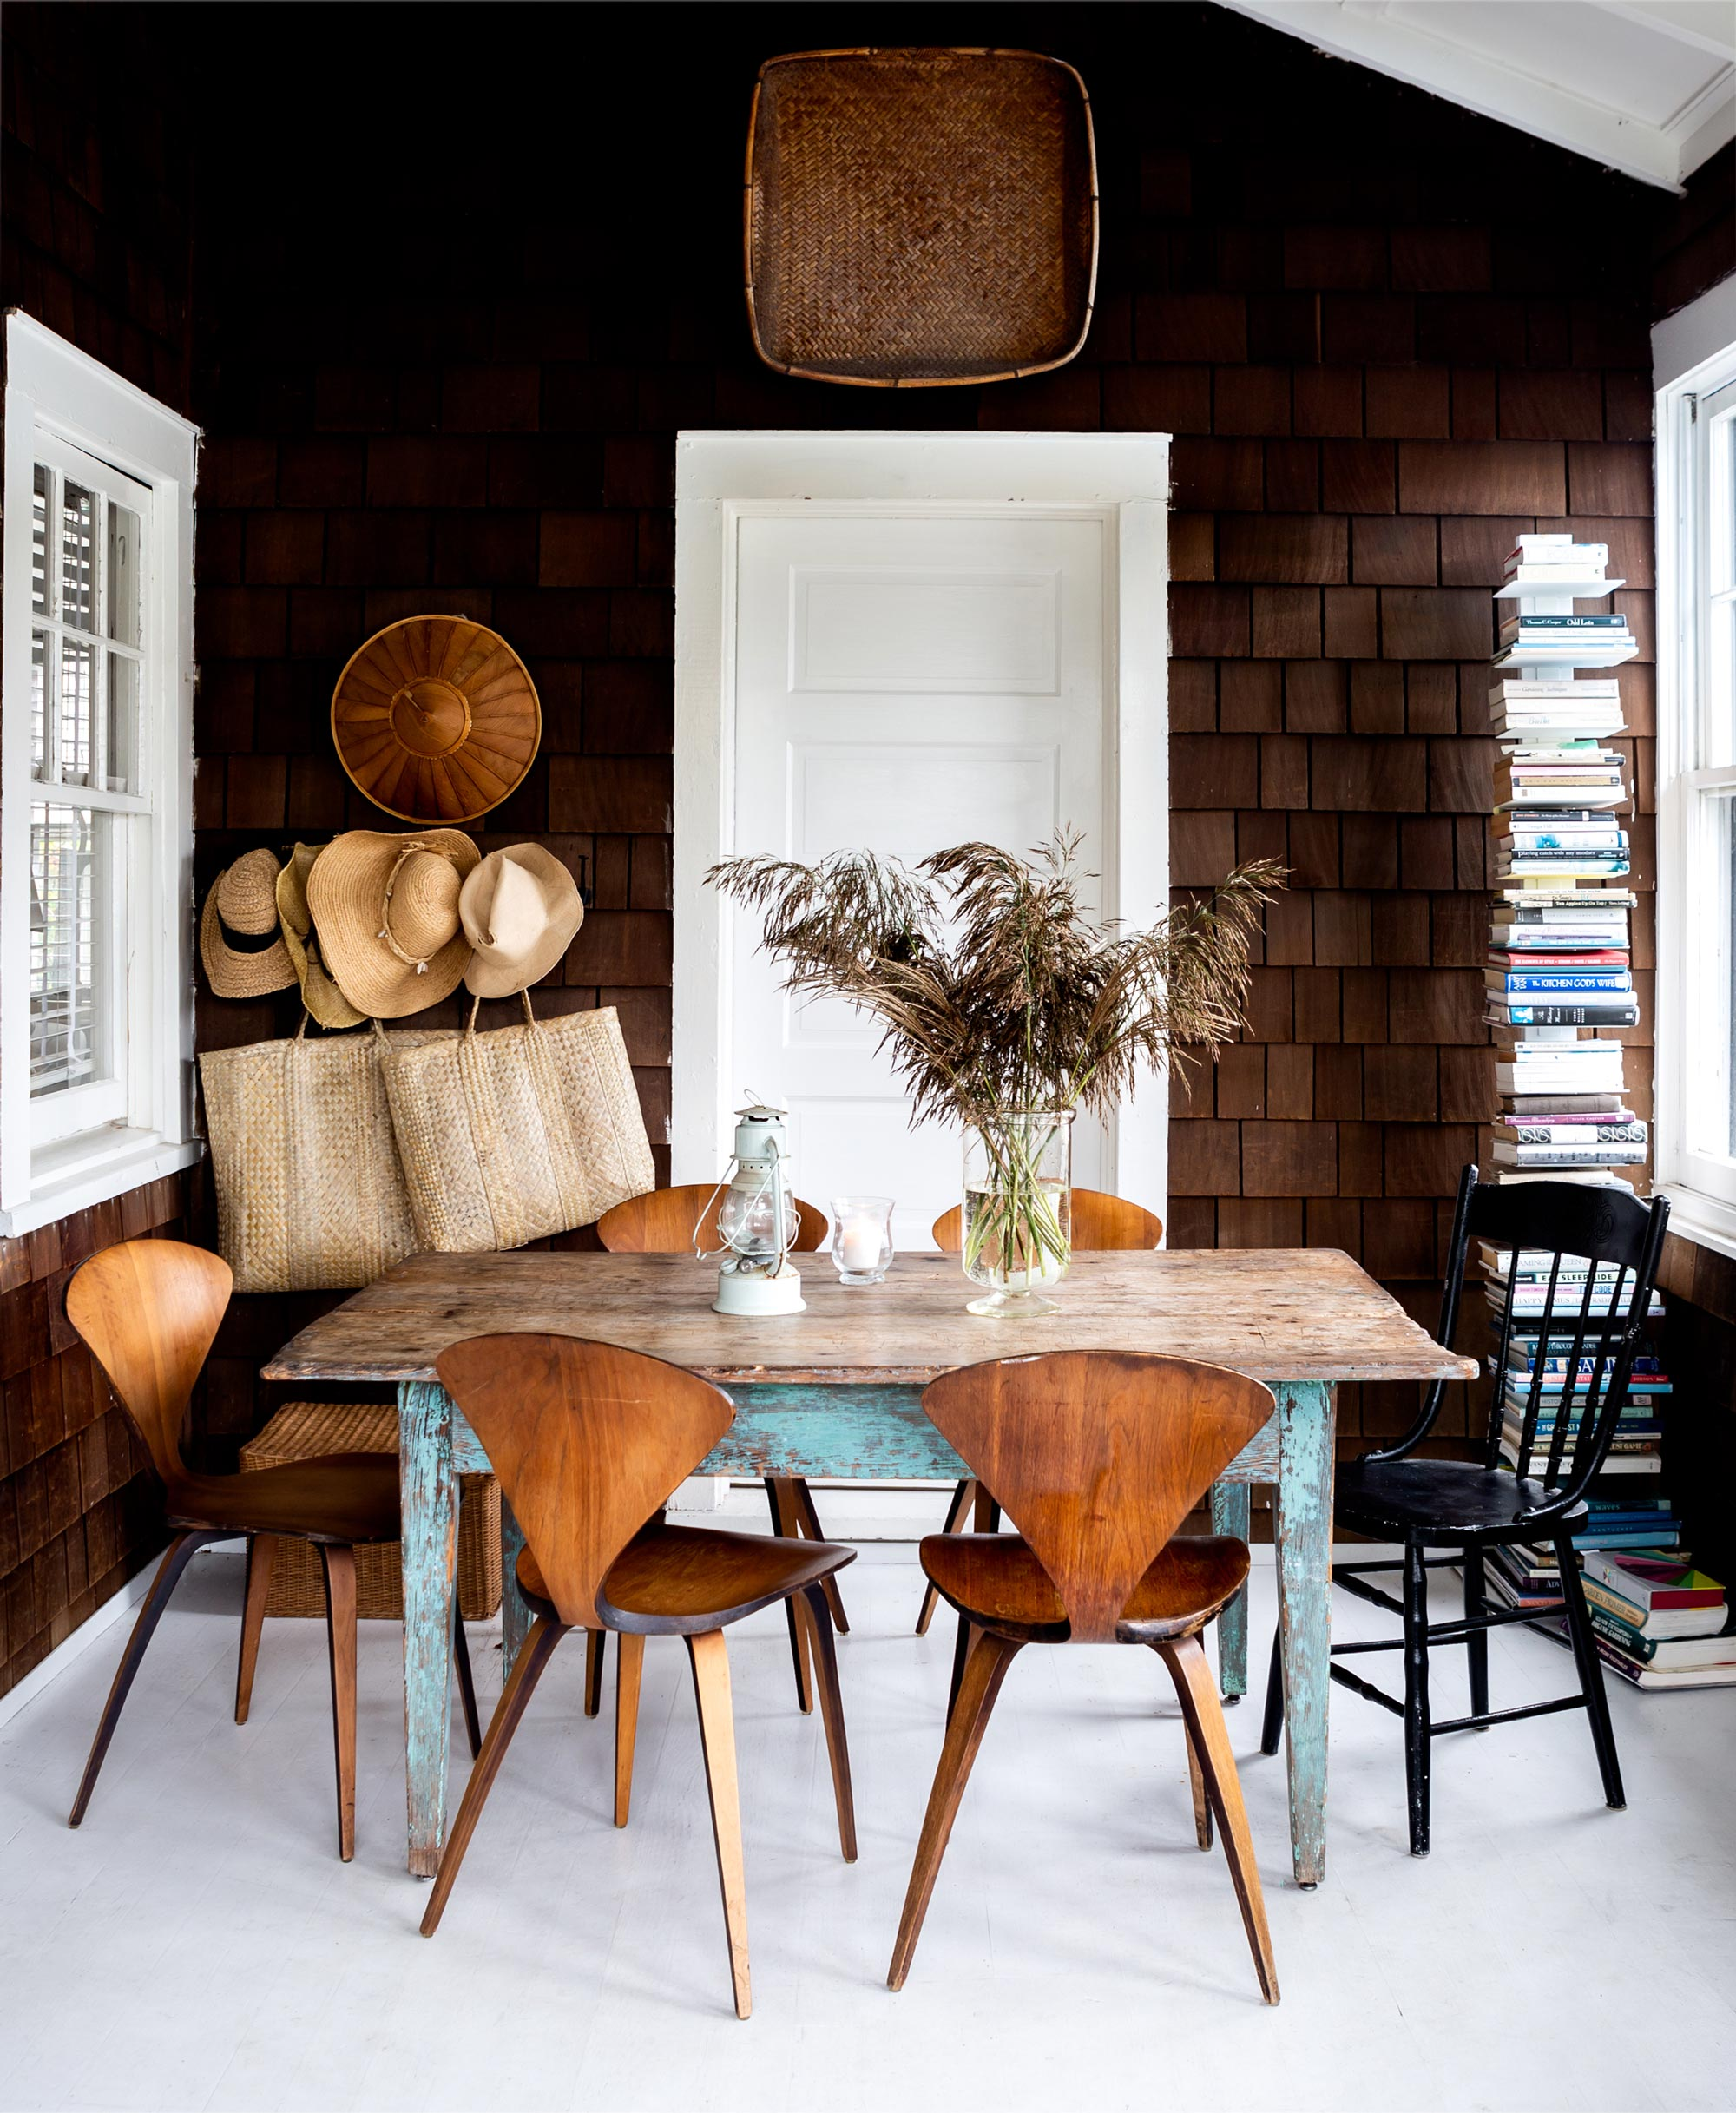 """Underlining the links between different design eras, Bates often pairs up unlike pieces, such as a well-used antique dining table and a midcentury set of Norman Cherner chairs. """"I've always loved American primitive furniture like that table because the lines do have this very clean, modern feeling to them, even though the pieces are actually very old,"""" she says. """"The chairs I bought one by one on eBay. Cherner is one of my favorite designers. I just think the form is beyond elegant."""""""